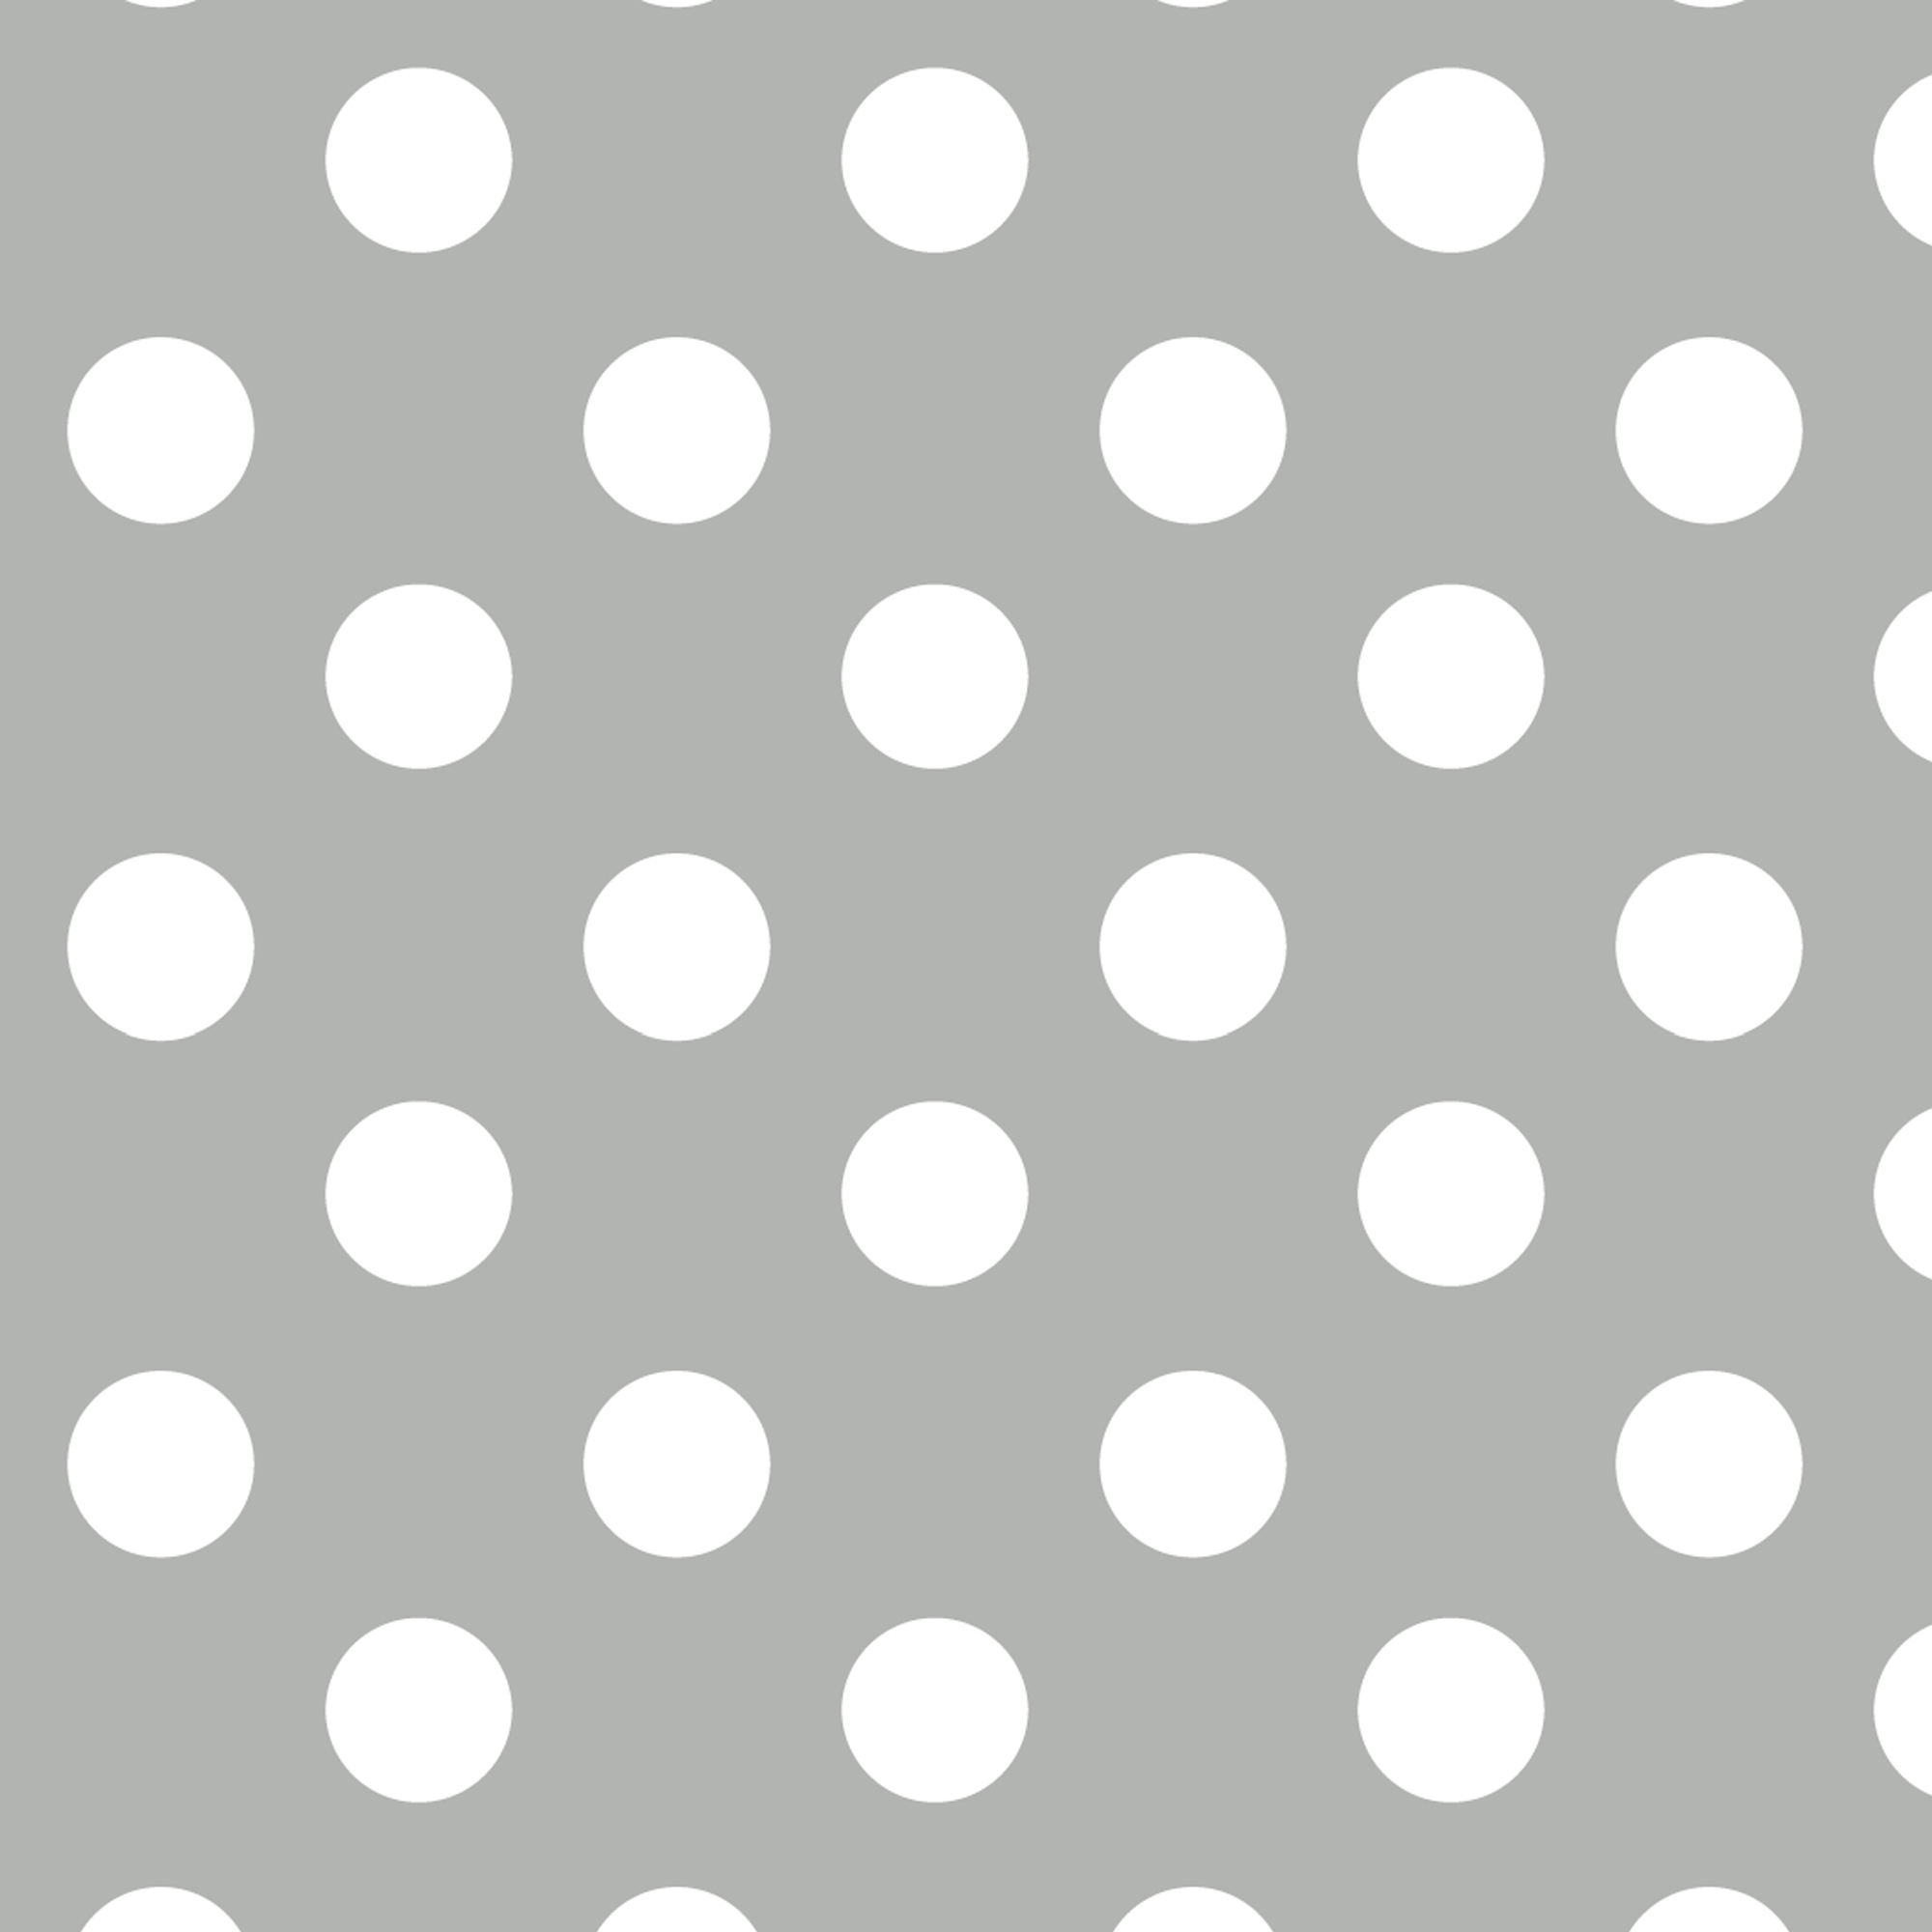 David Textiles Flannel Precut Fabric Polka Dot 1.5 Yds X 42 Inches